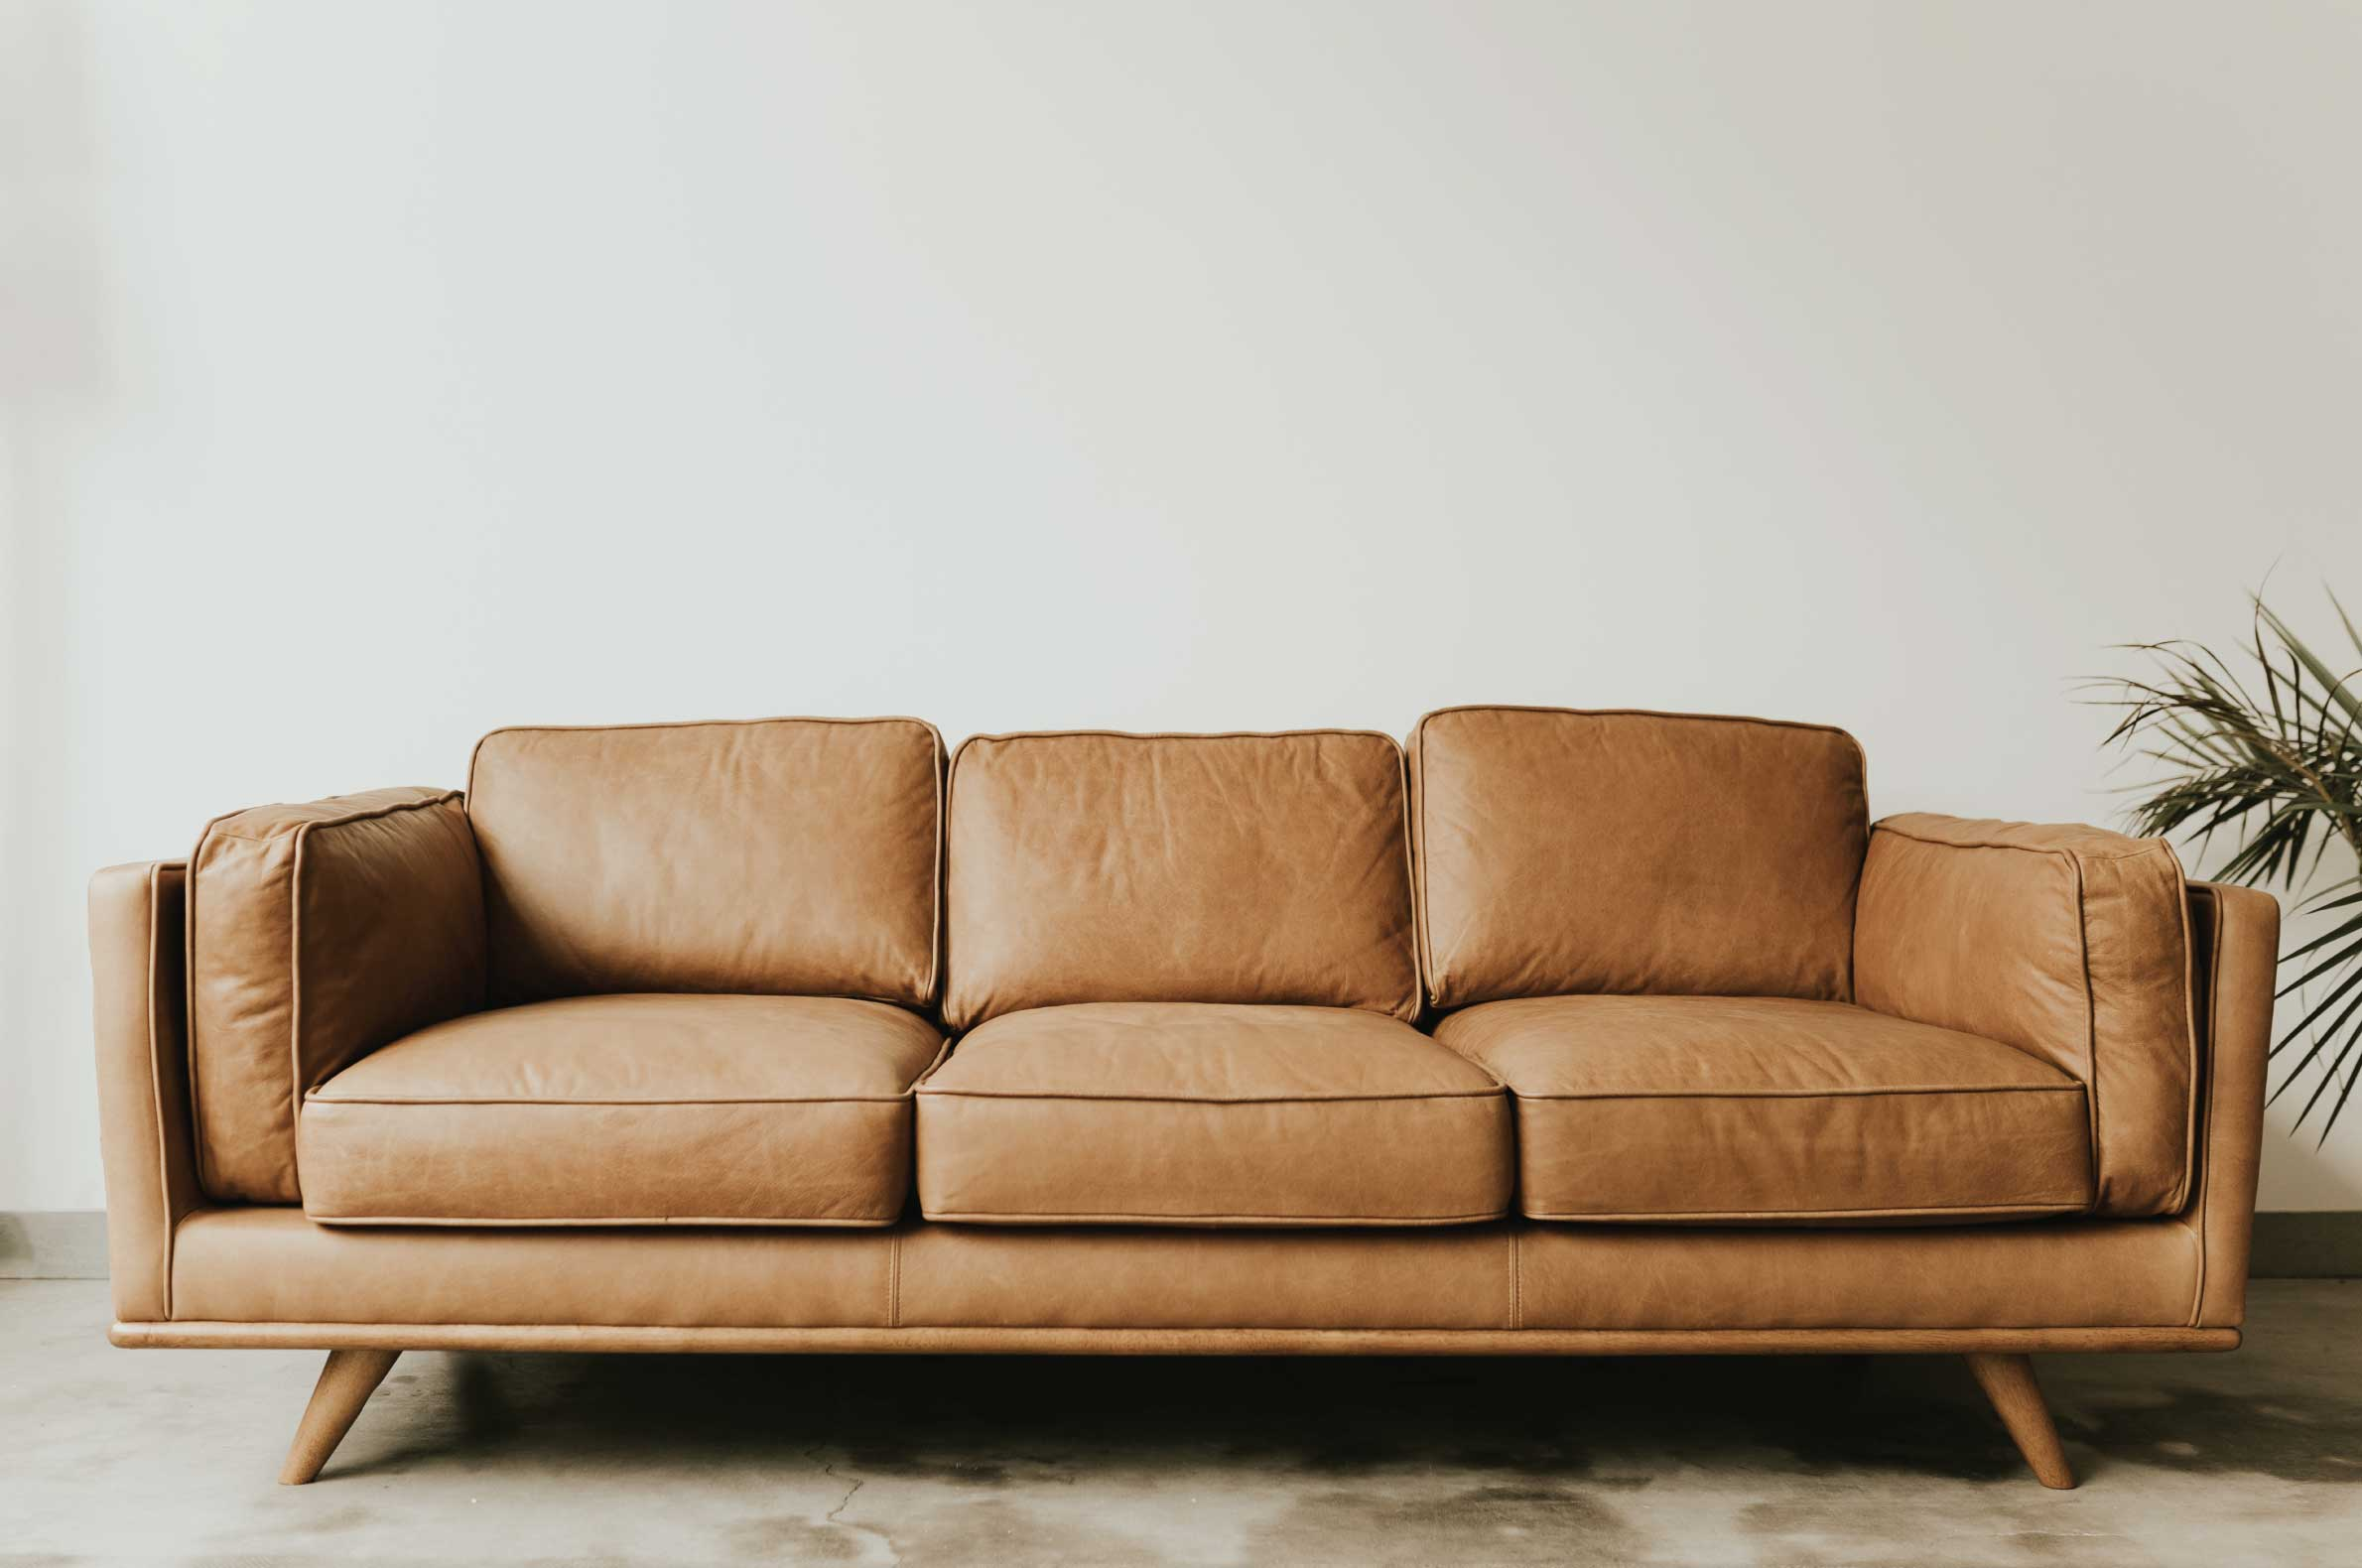 Best Sofa Bed In Australia You Can Buy Online   20 Reviews